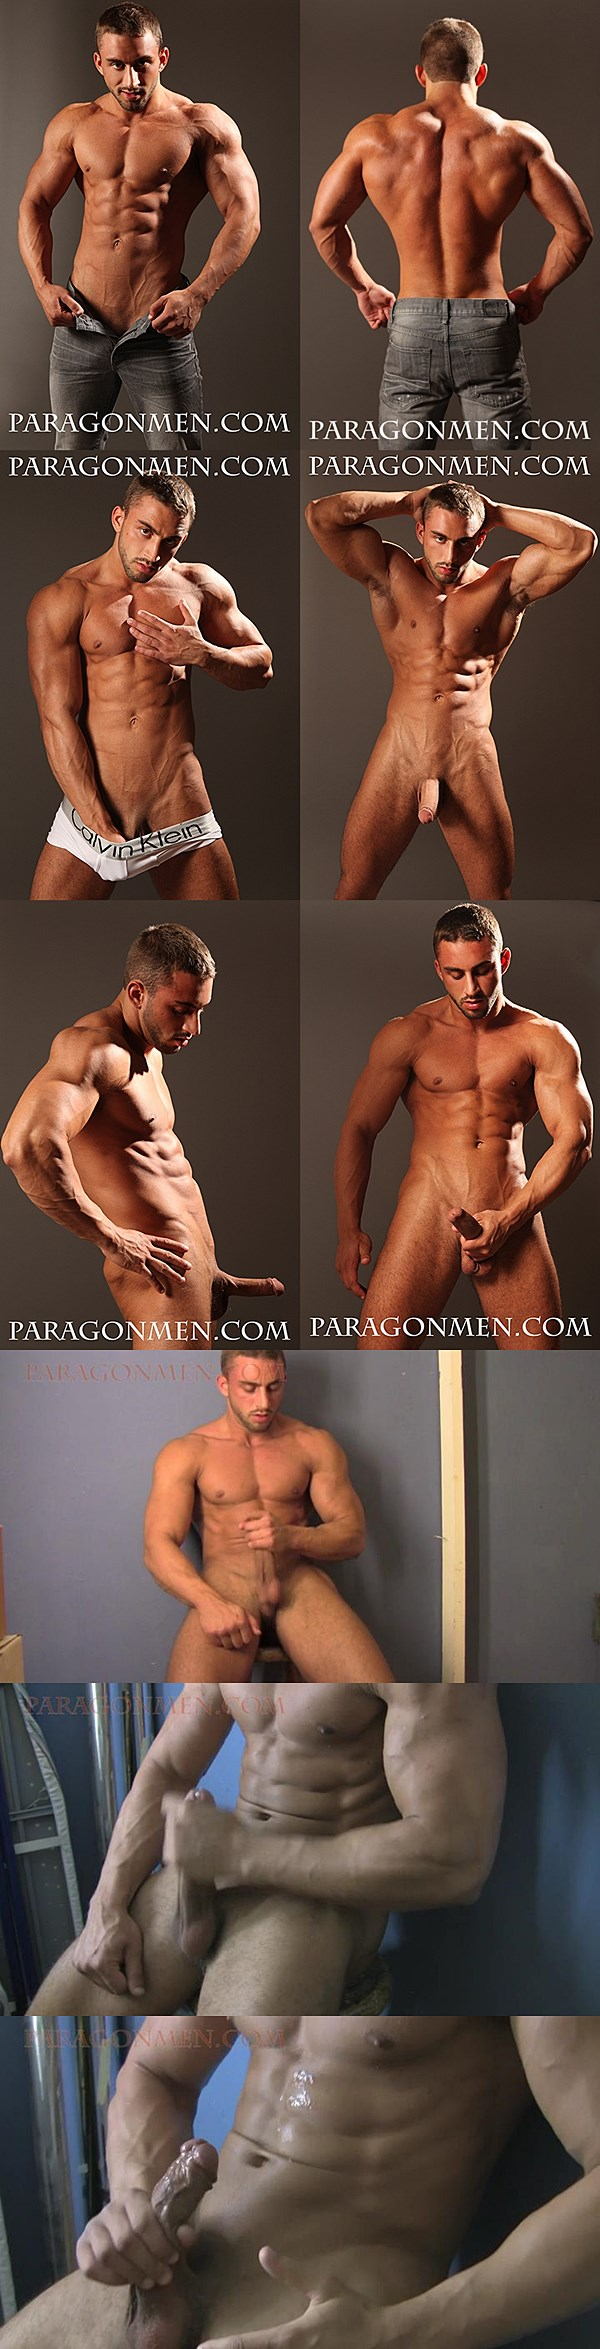 Handsome macho Francis shows off his hot ripped body and dumps his juicy load at Paragonmen